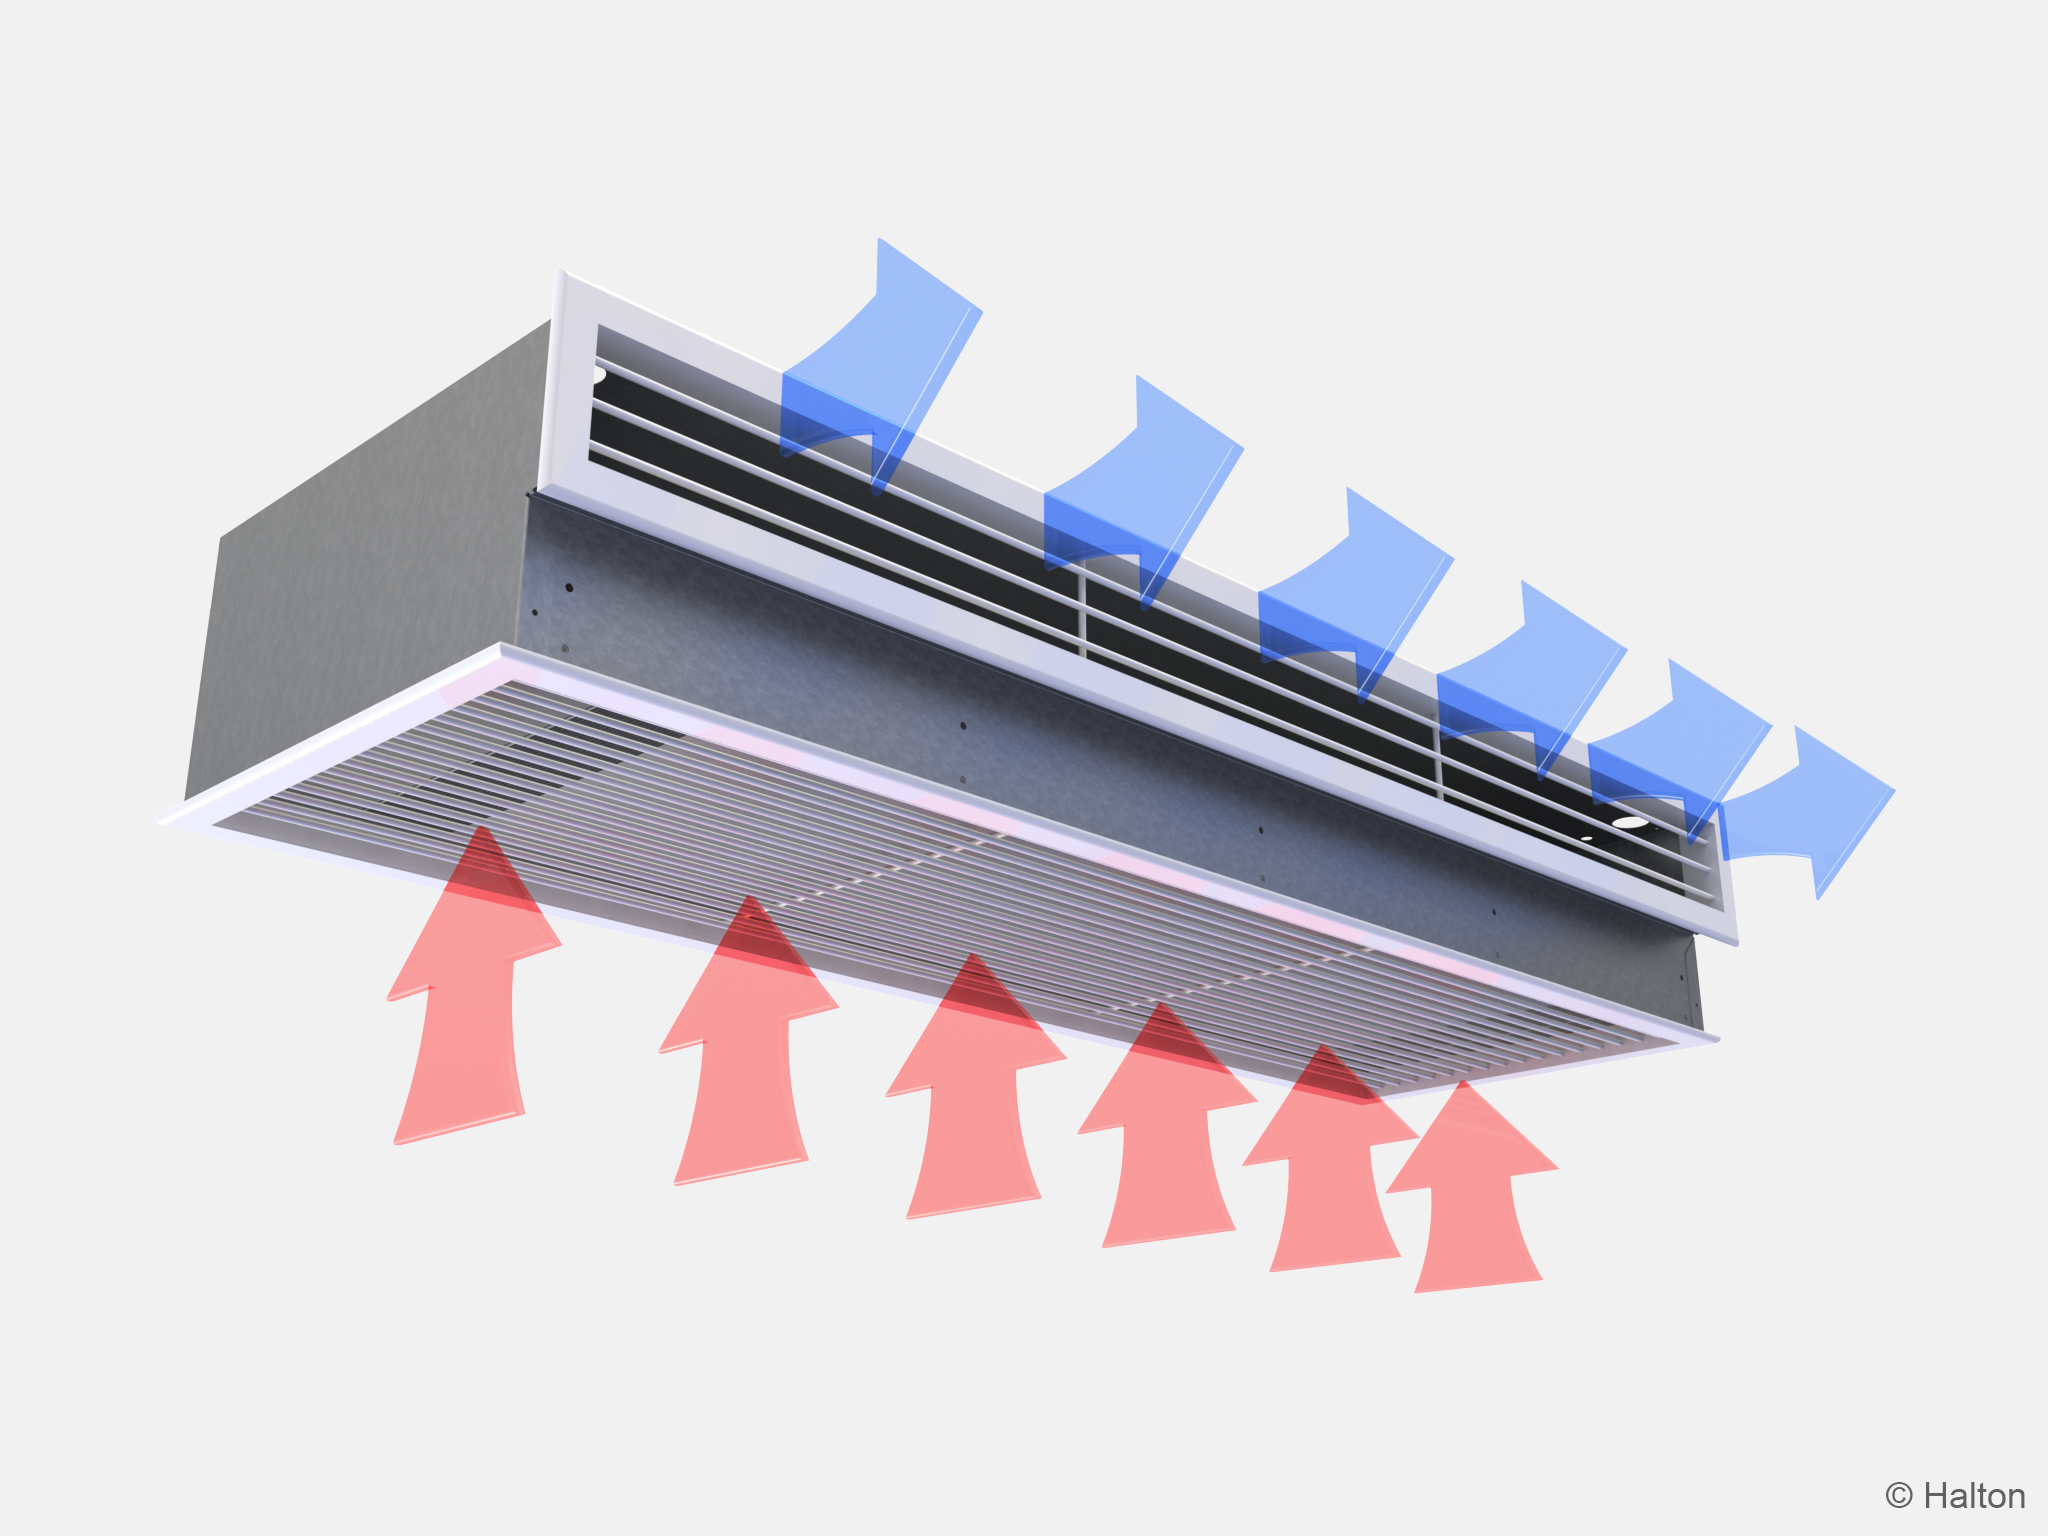 Function of the Halton CaBeam Chilled Beam for Integrated Installation